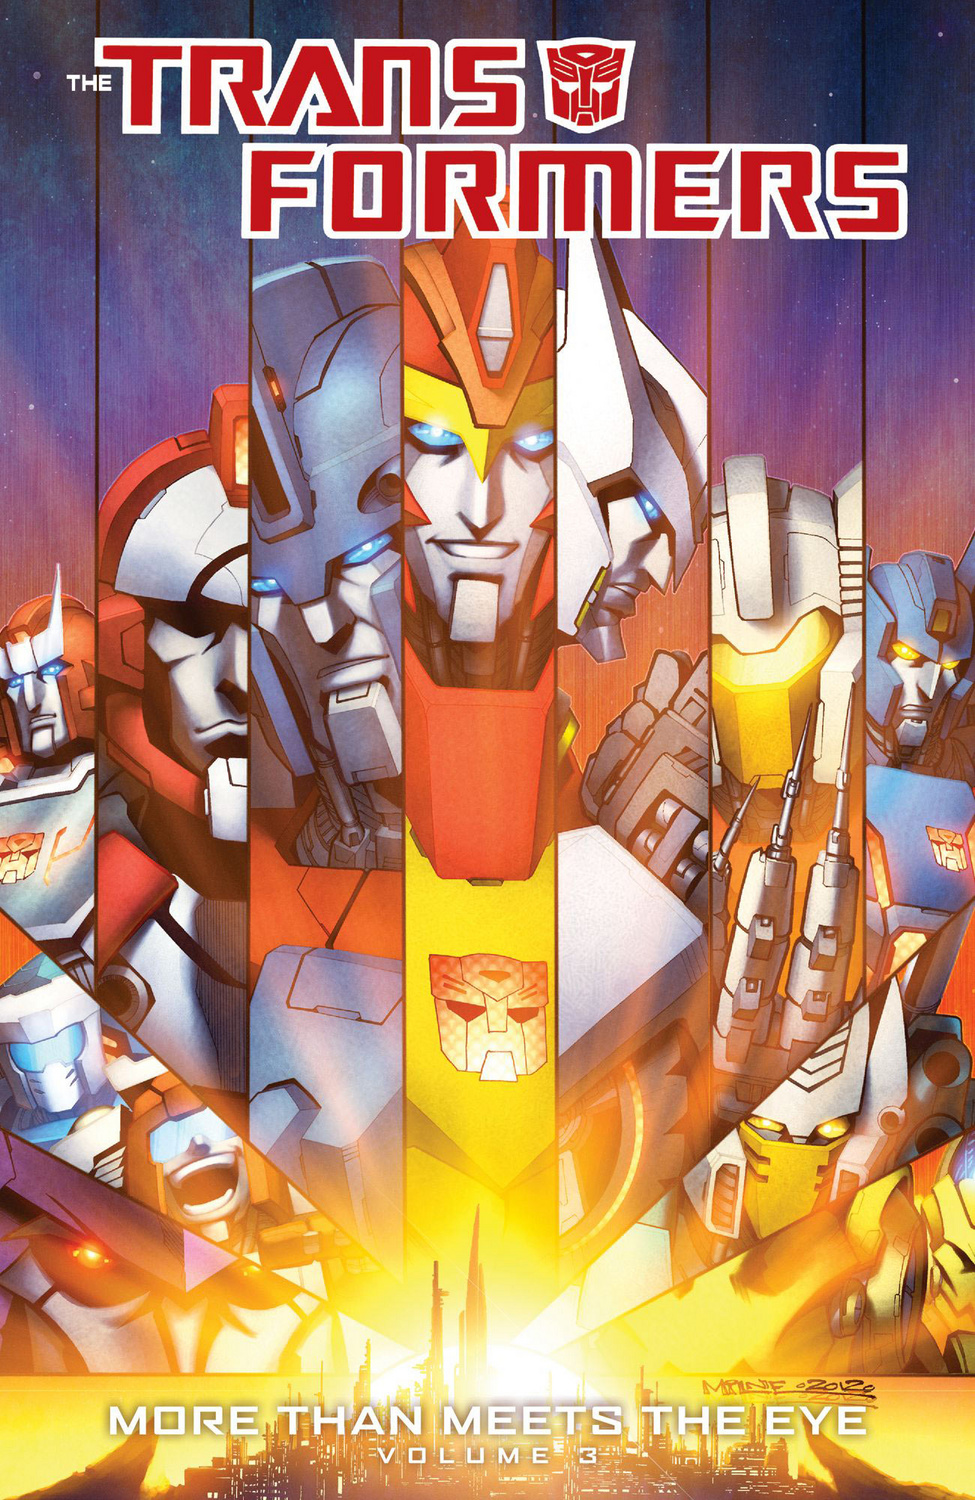 Transformers More Than Meets the Eye Volume 3 Image